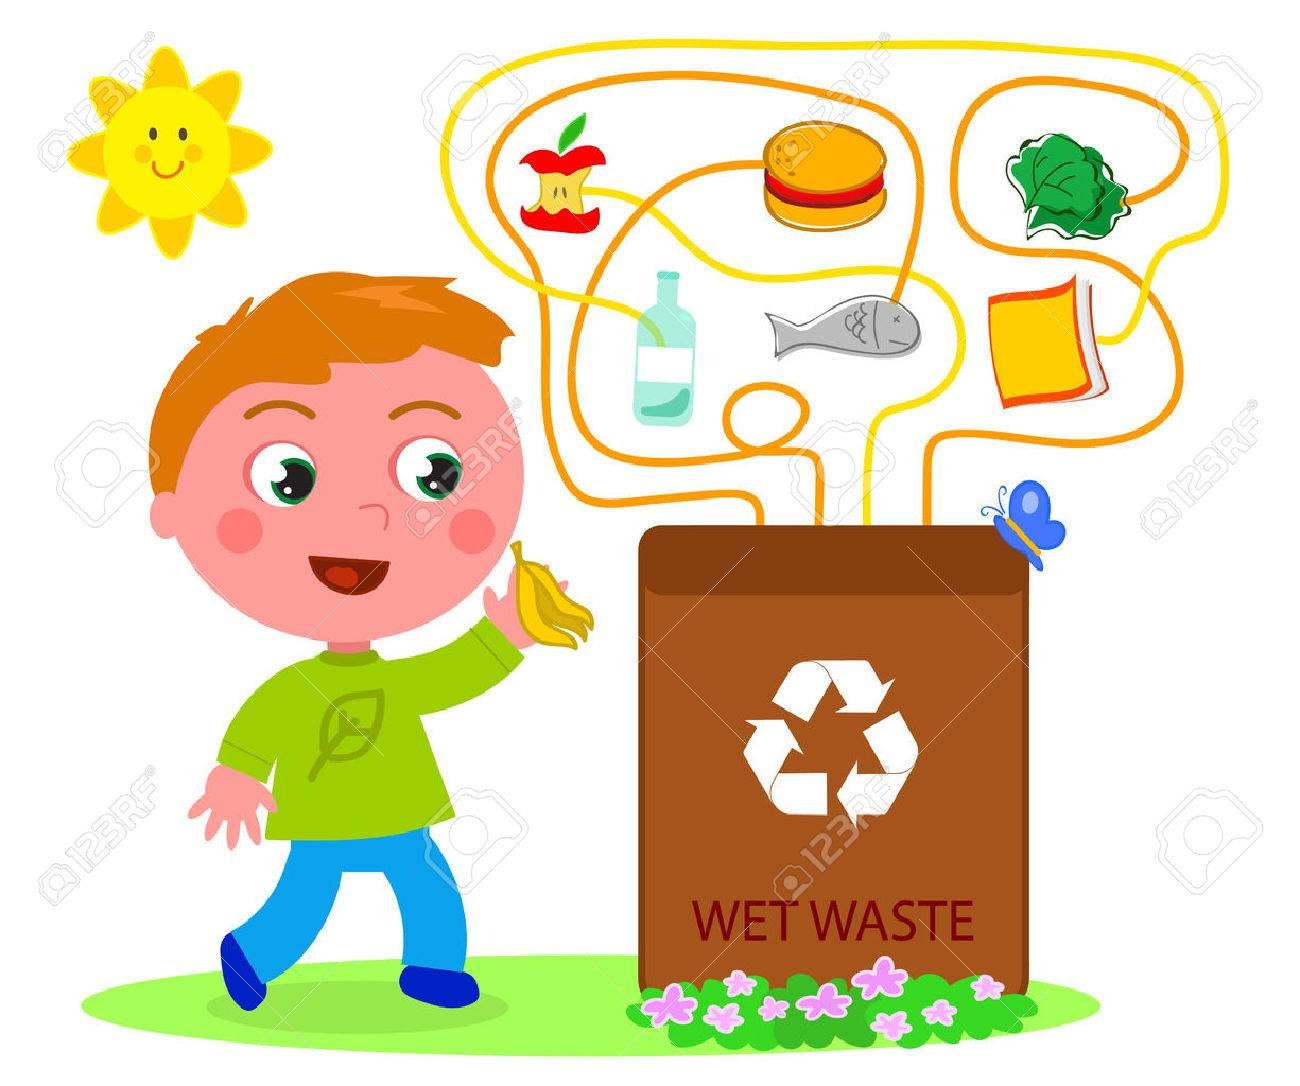 Wet waste recycling game - 55951776